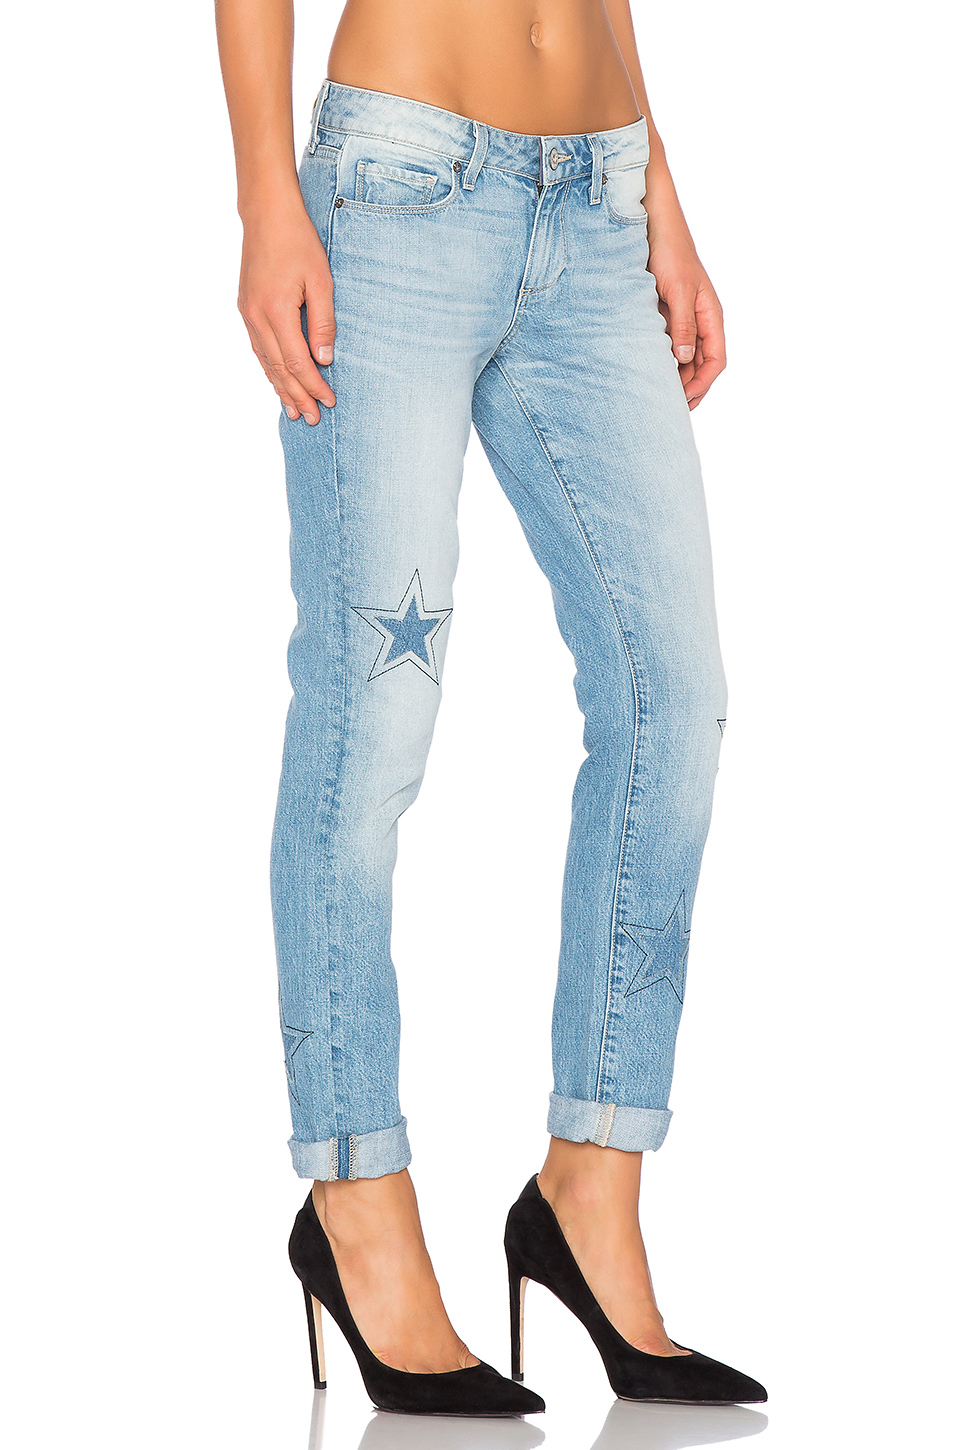 952bc3a3c3b PAIGE Jimmy Jimmy Skinny in Blue - Lyst